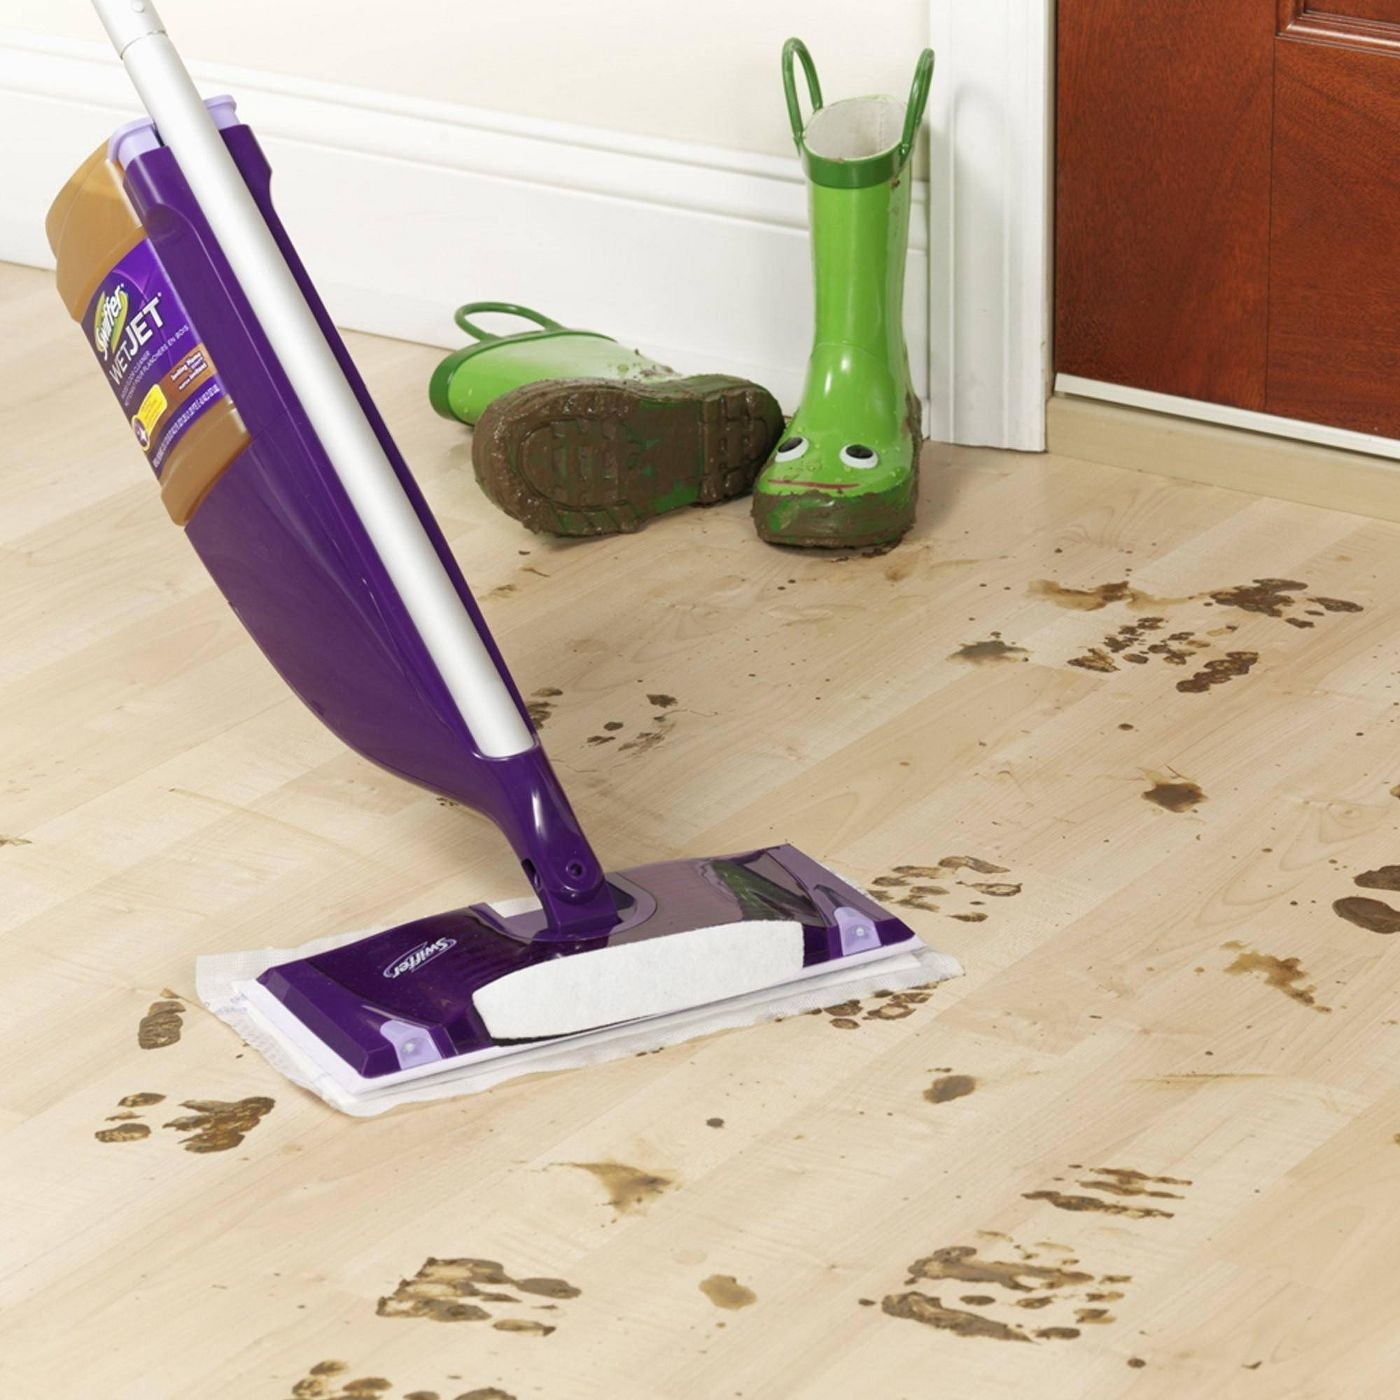 Mop cleaning up dirty floor